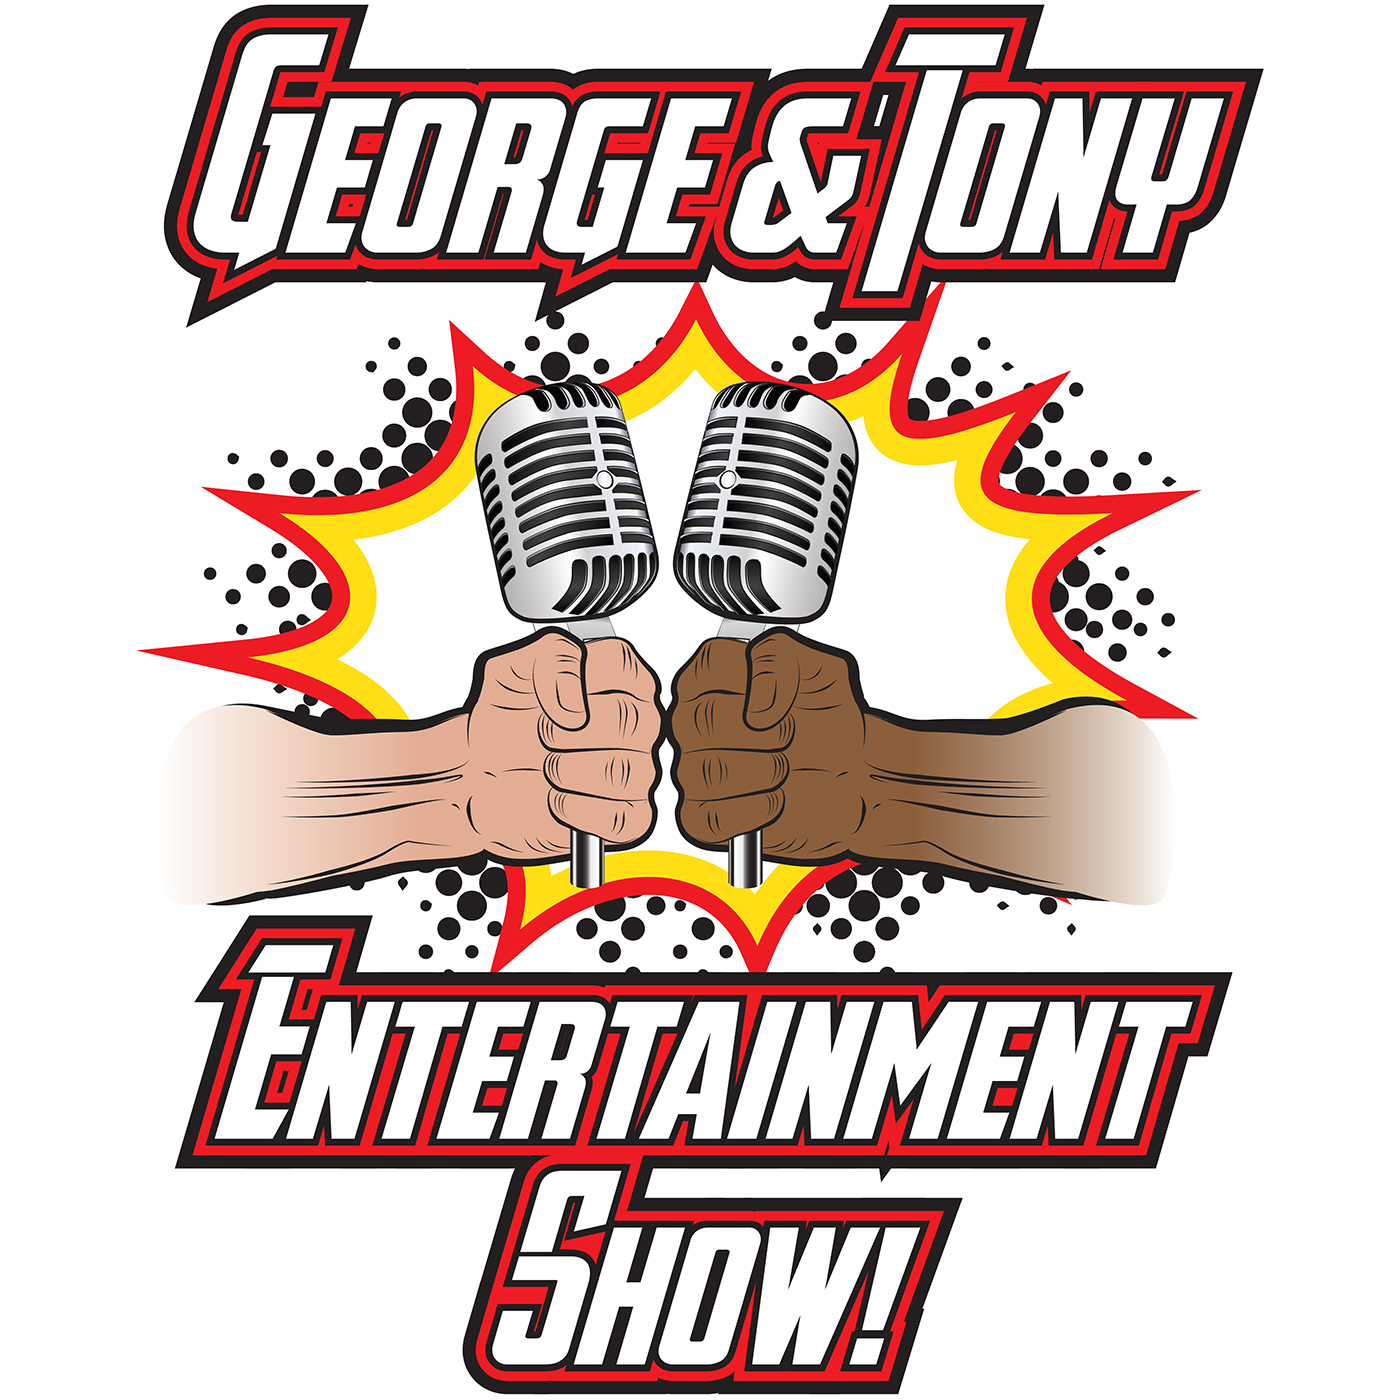 George and Tony Entertainment Show #95